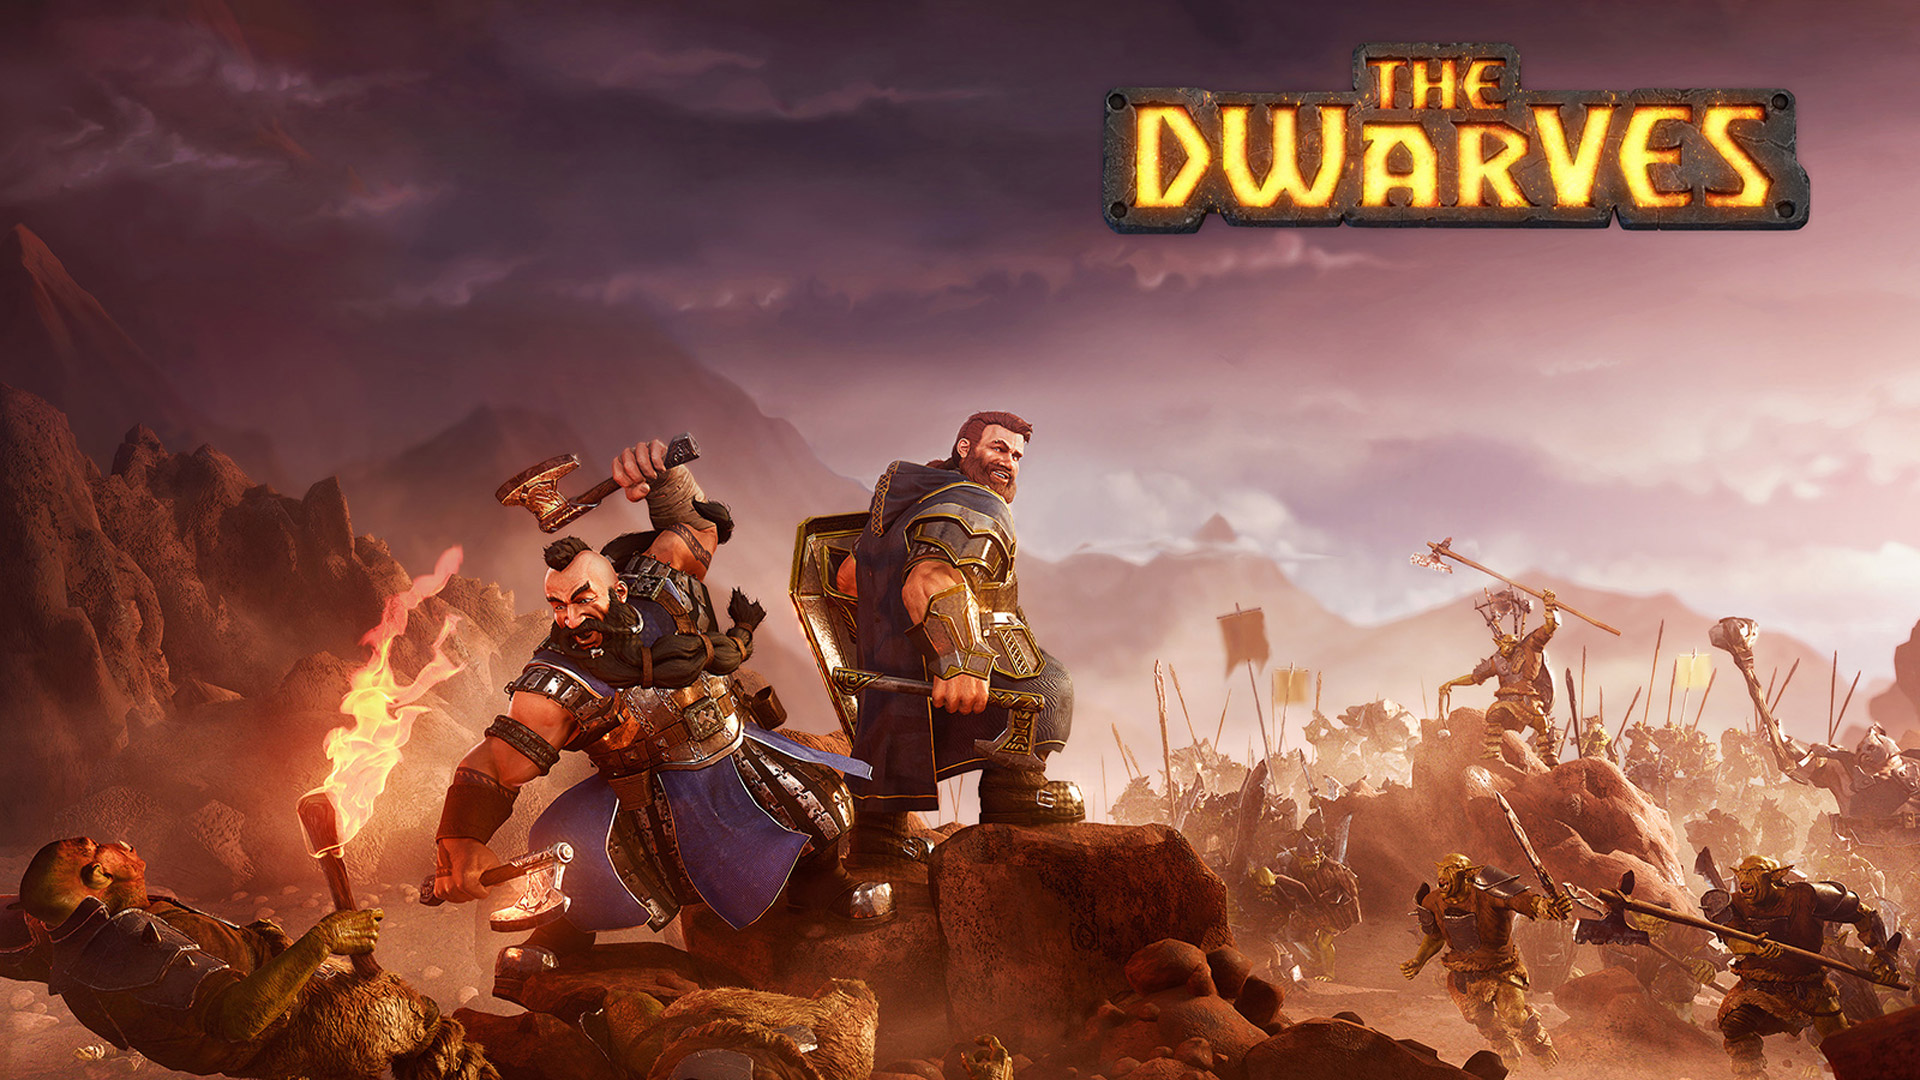 Free The Dwarves Wallpaper in 1920x1080